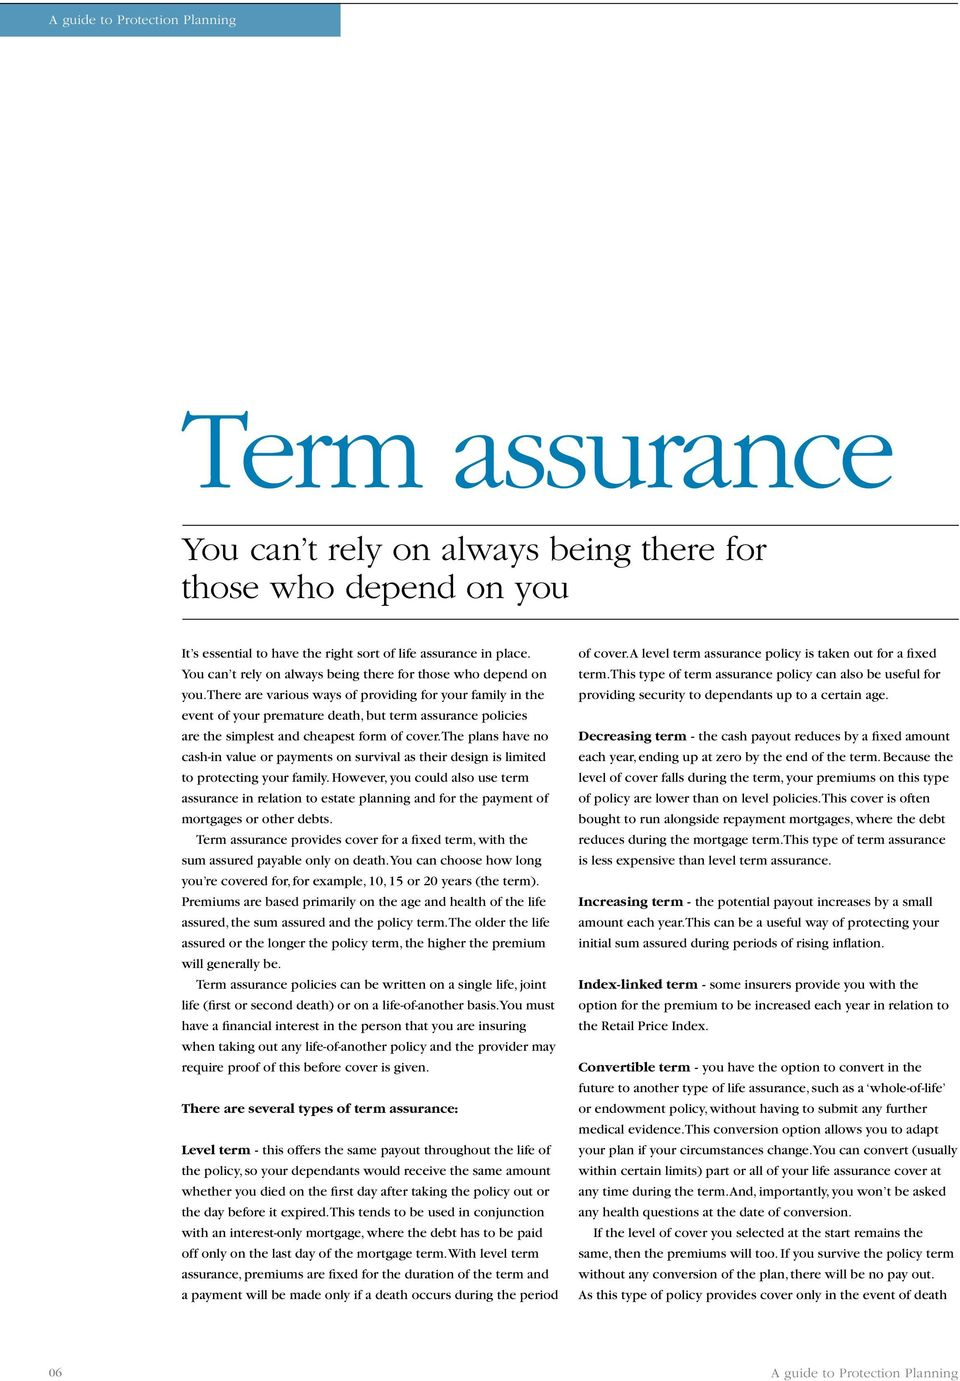 There are various ways of providing for your family in the event of your premature death, but term assurance policies are the simplest and cheapest form of cover.